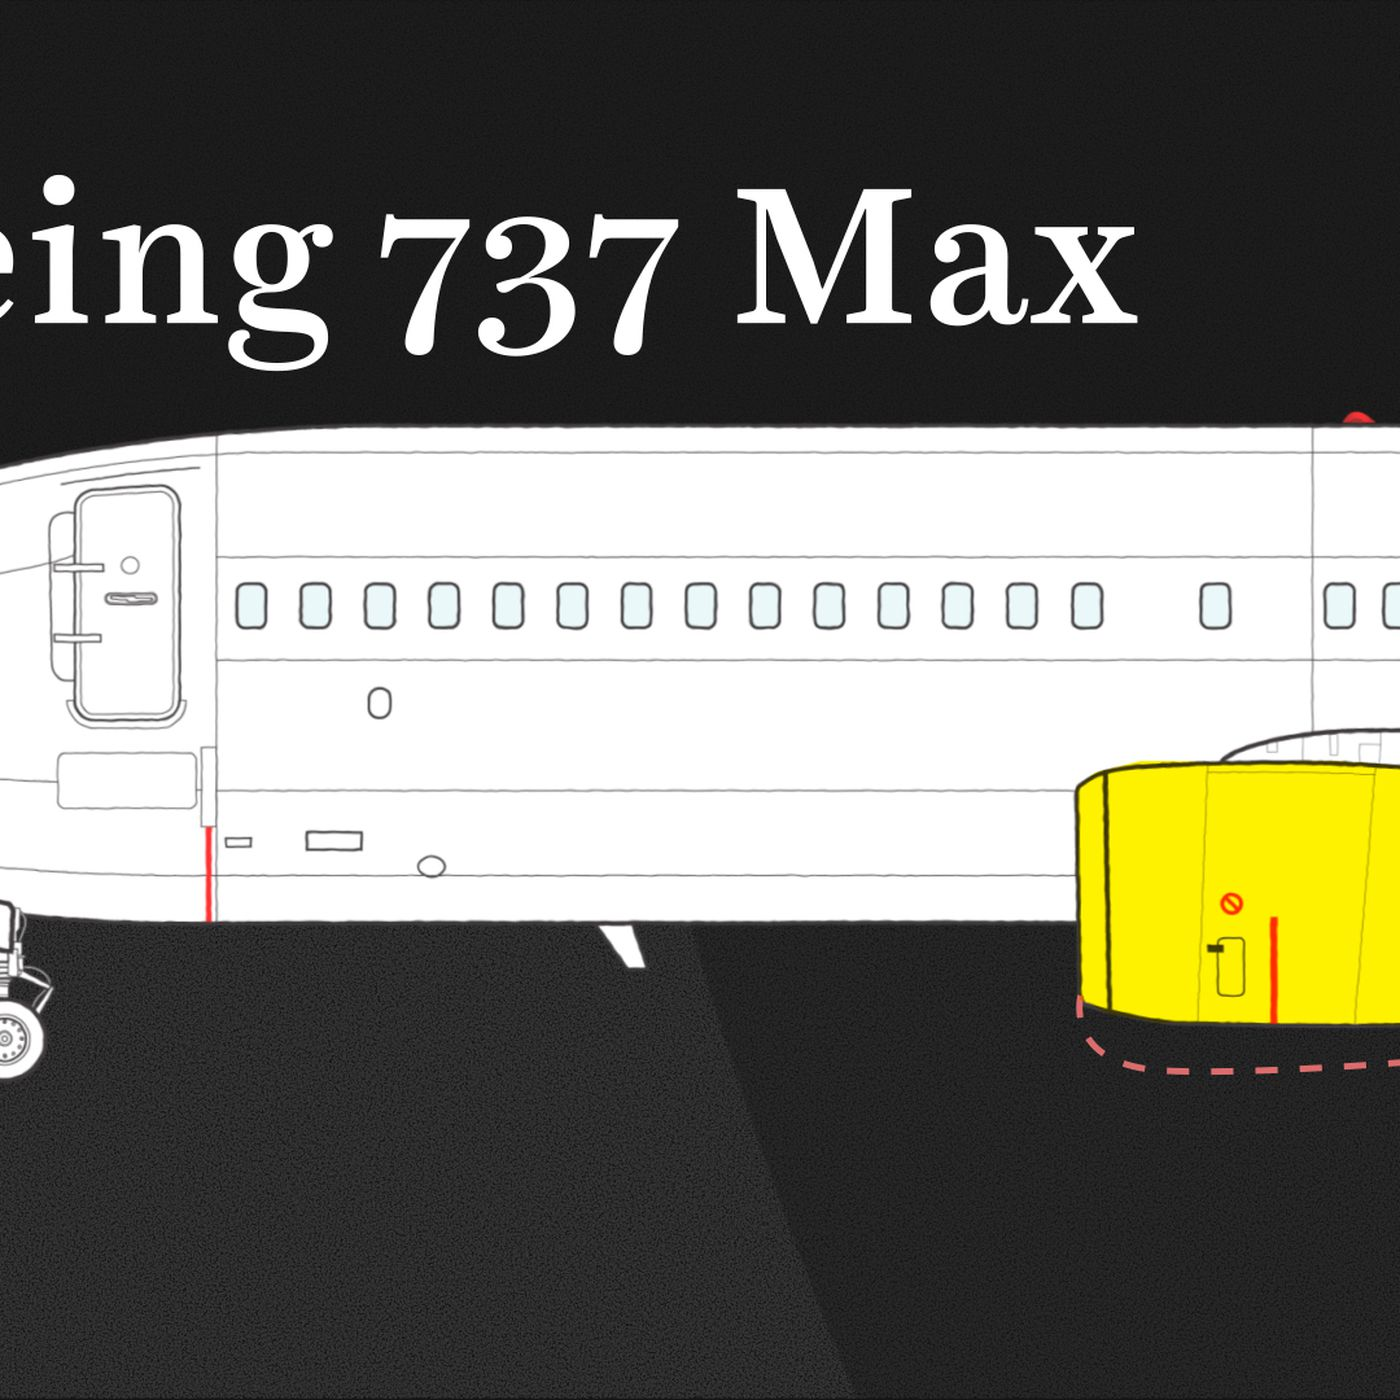 The real reason Boeing's new 737 Max crashed twice - Vox